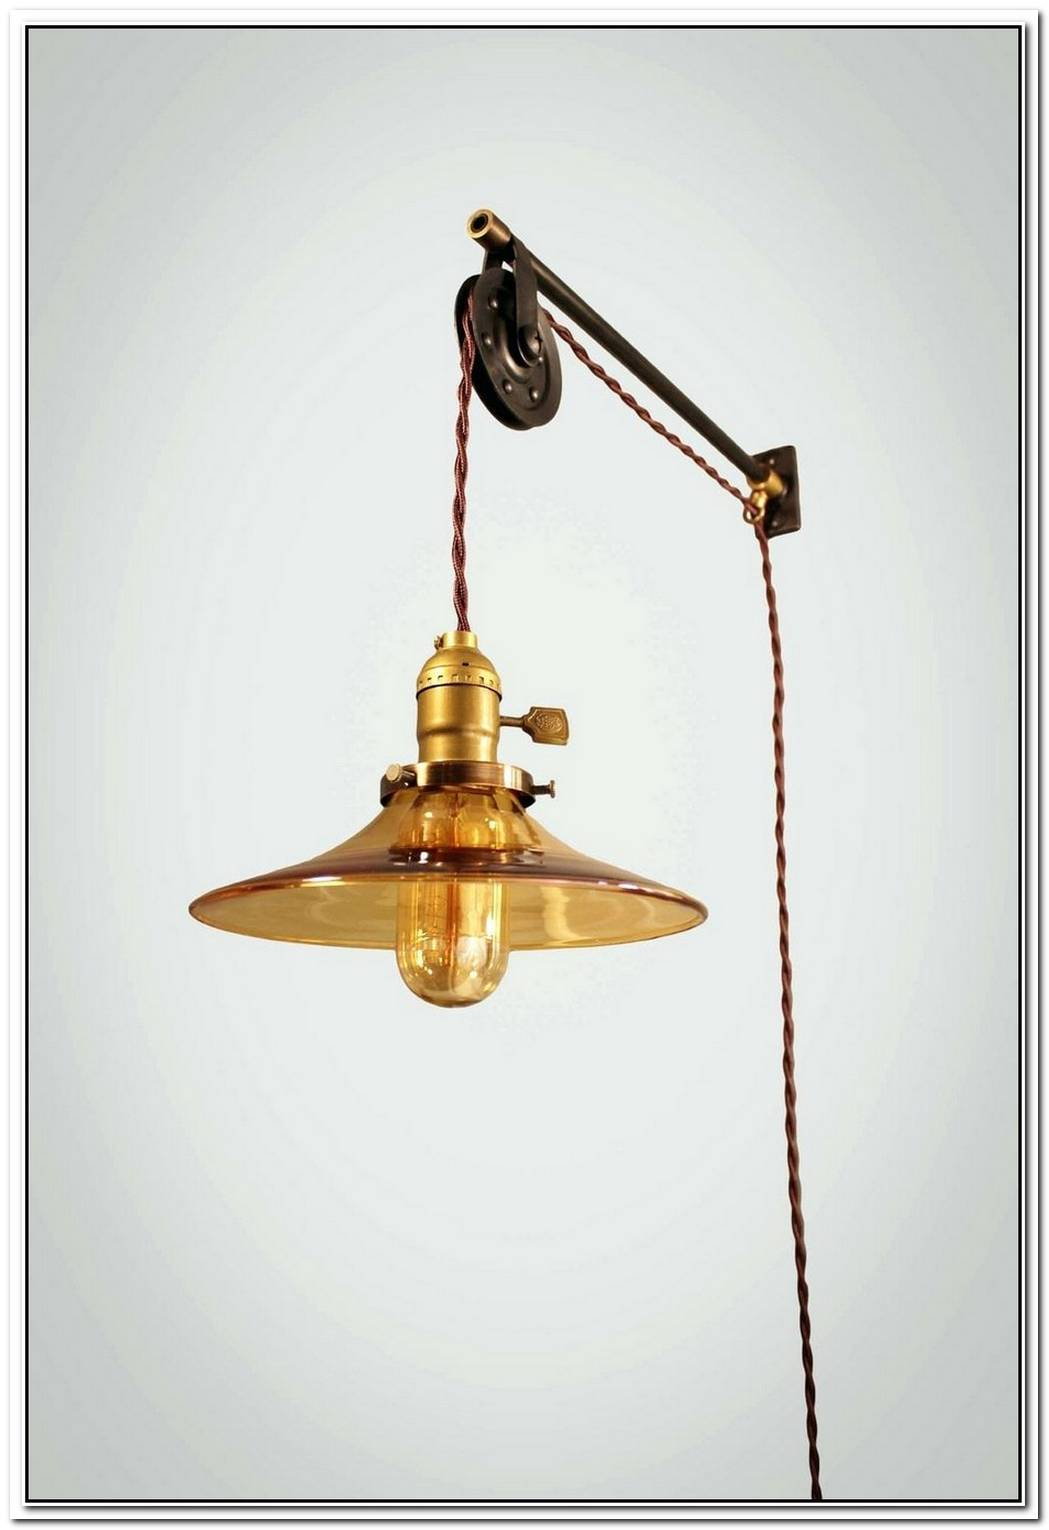 The Industrial Pulley Double Pendant